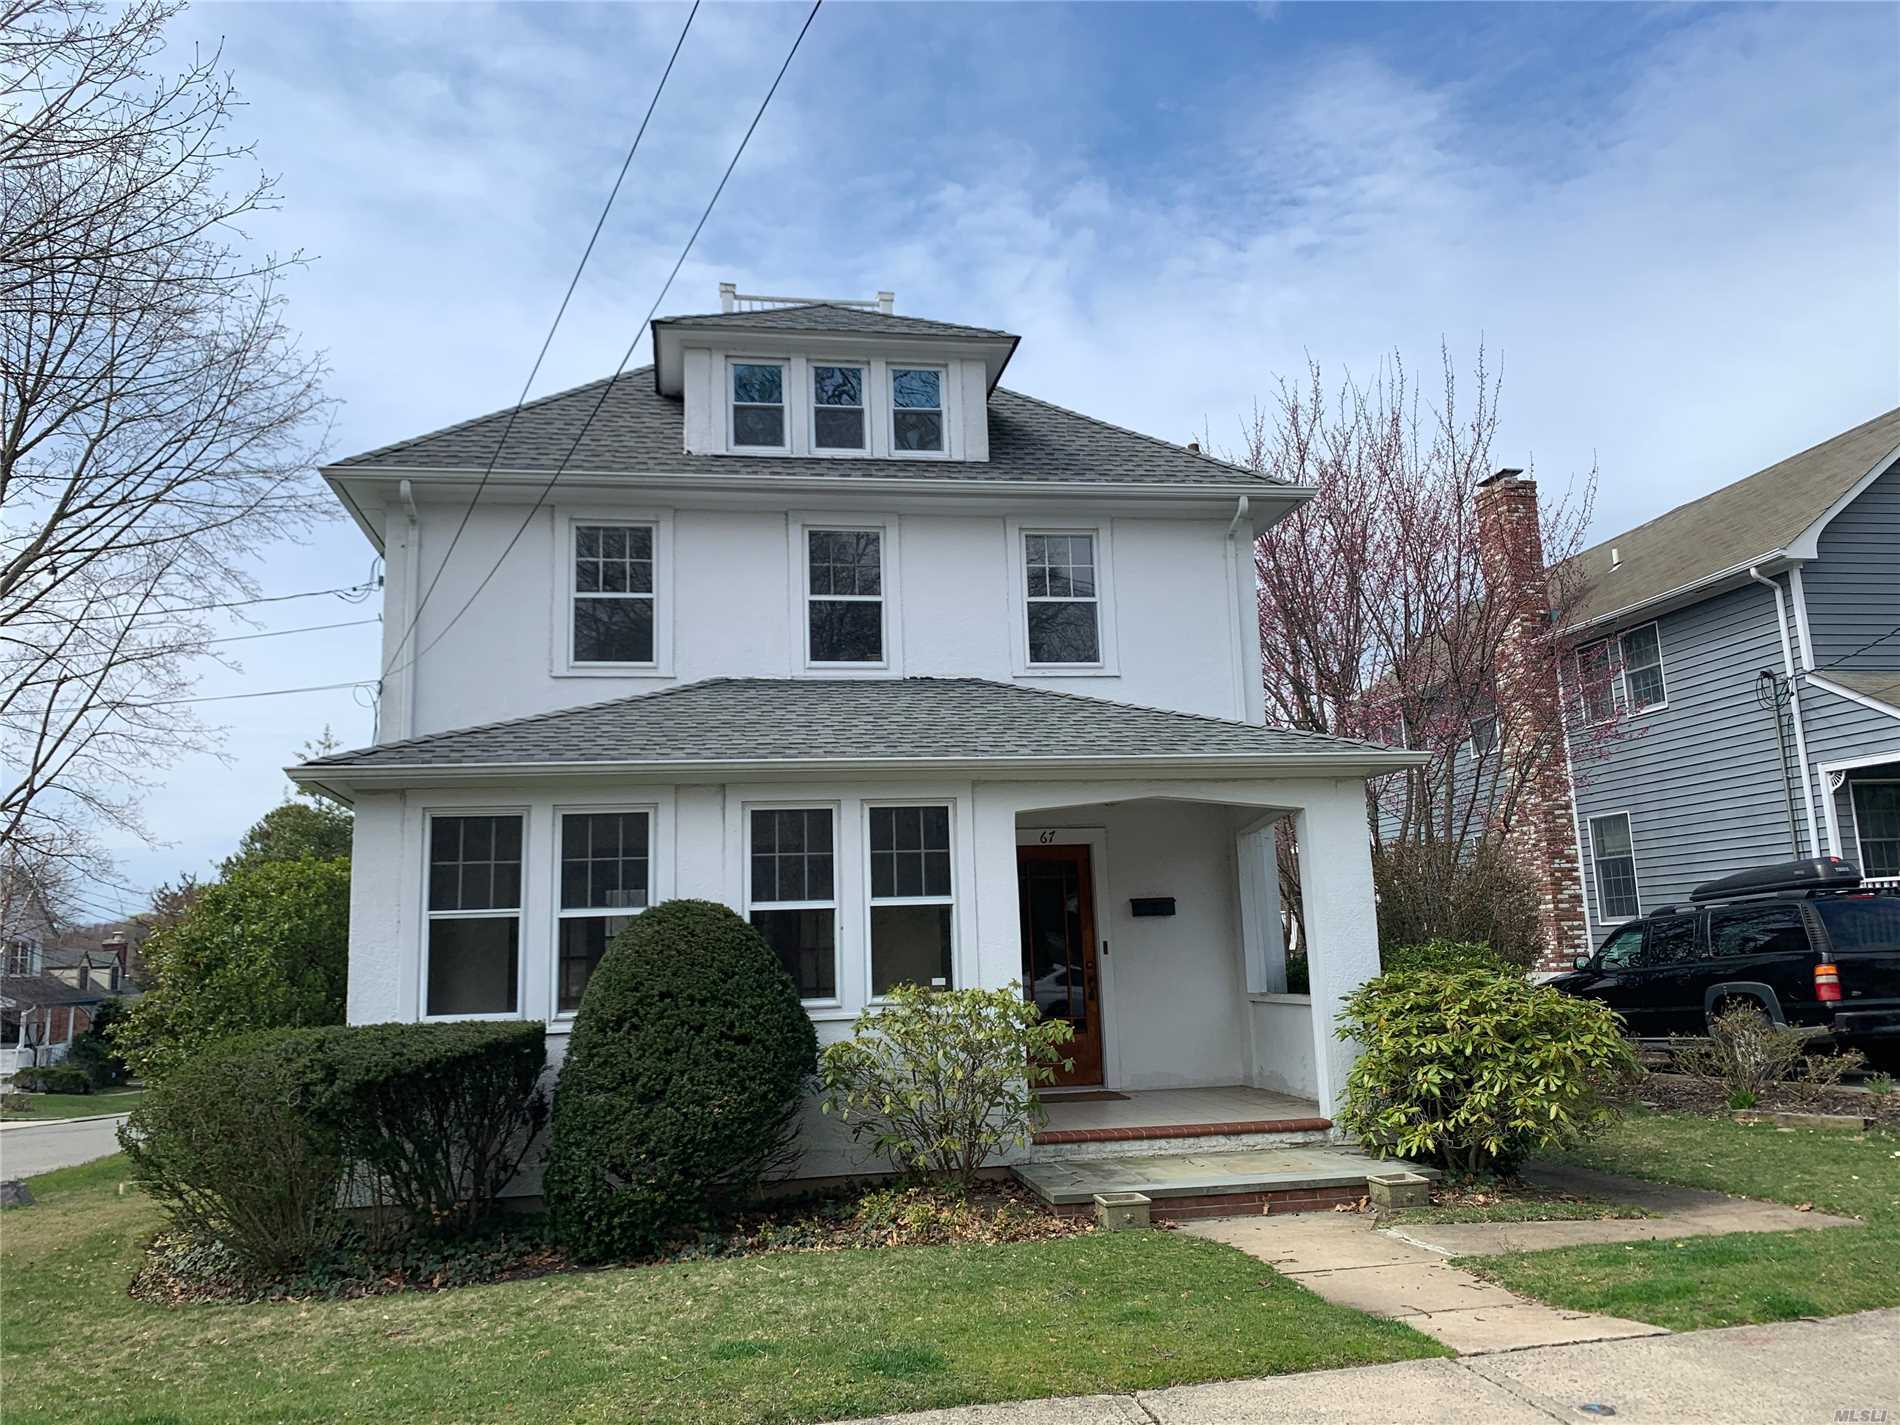 Charming 3 bedroom colonial home in the heart of Oyster Bay close to shopping and dining. Lawn care included, street parking only. Tenant pays all utilities. Full credit report and rental application is subject to landlords approval.